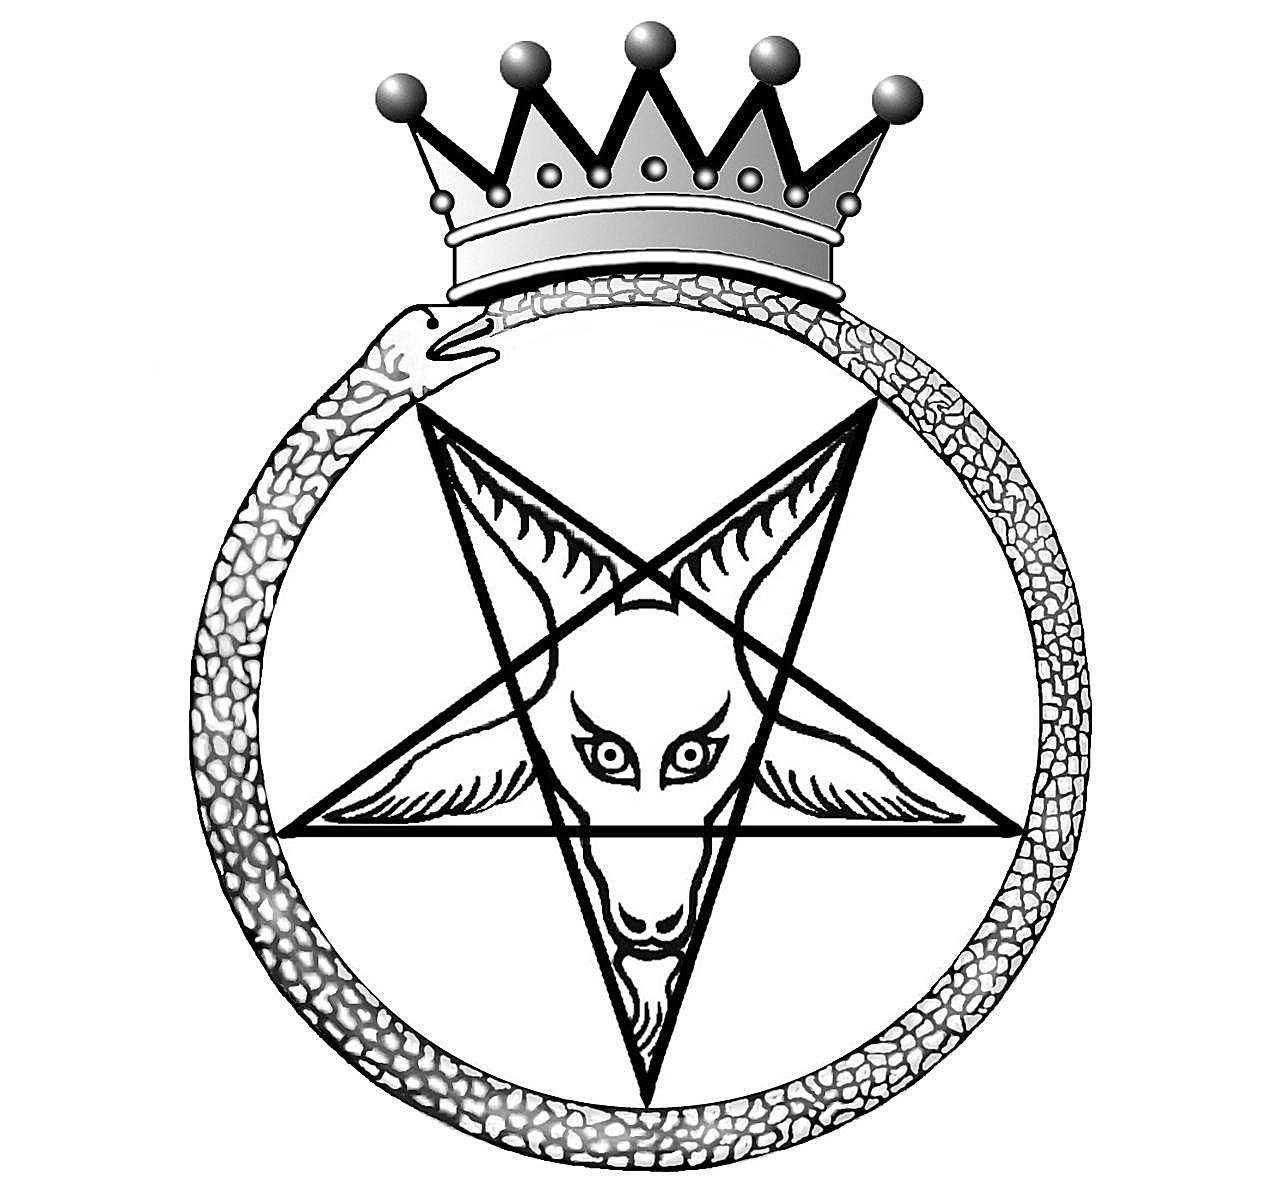 The Crown Princes of Hell in LaVeyan Satanism